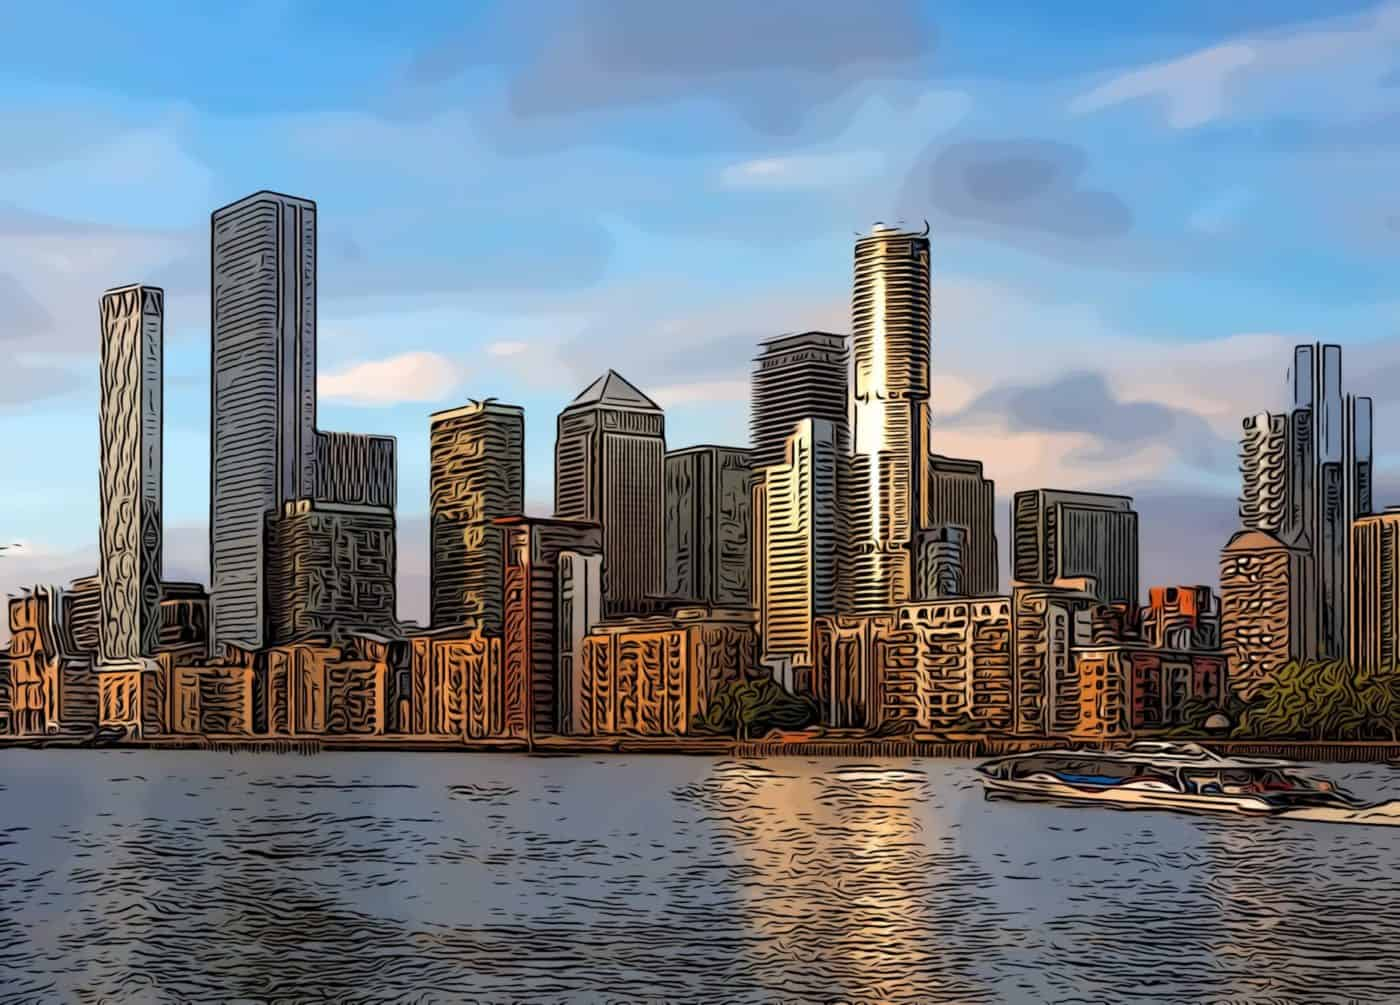 Renderings showing how Canary Wharf's skyline will look with Aspen and the Consort Place development